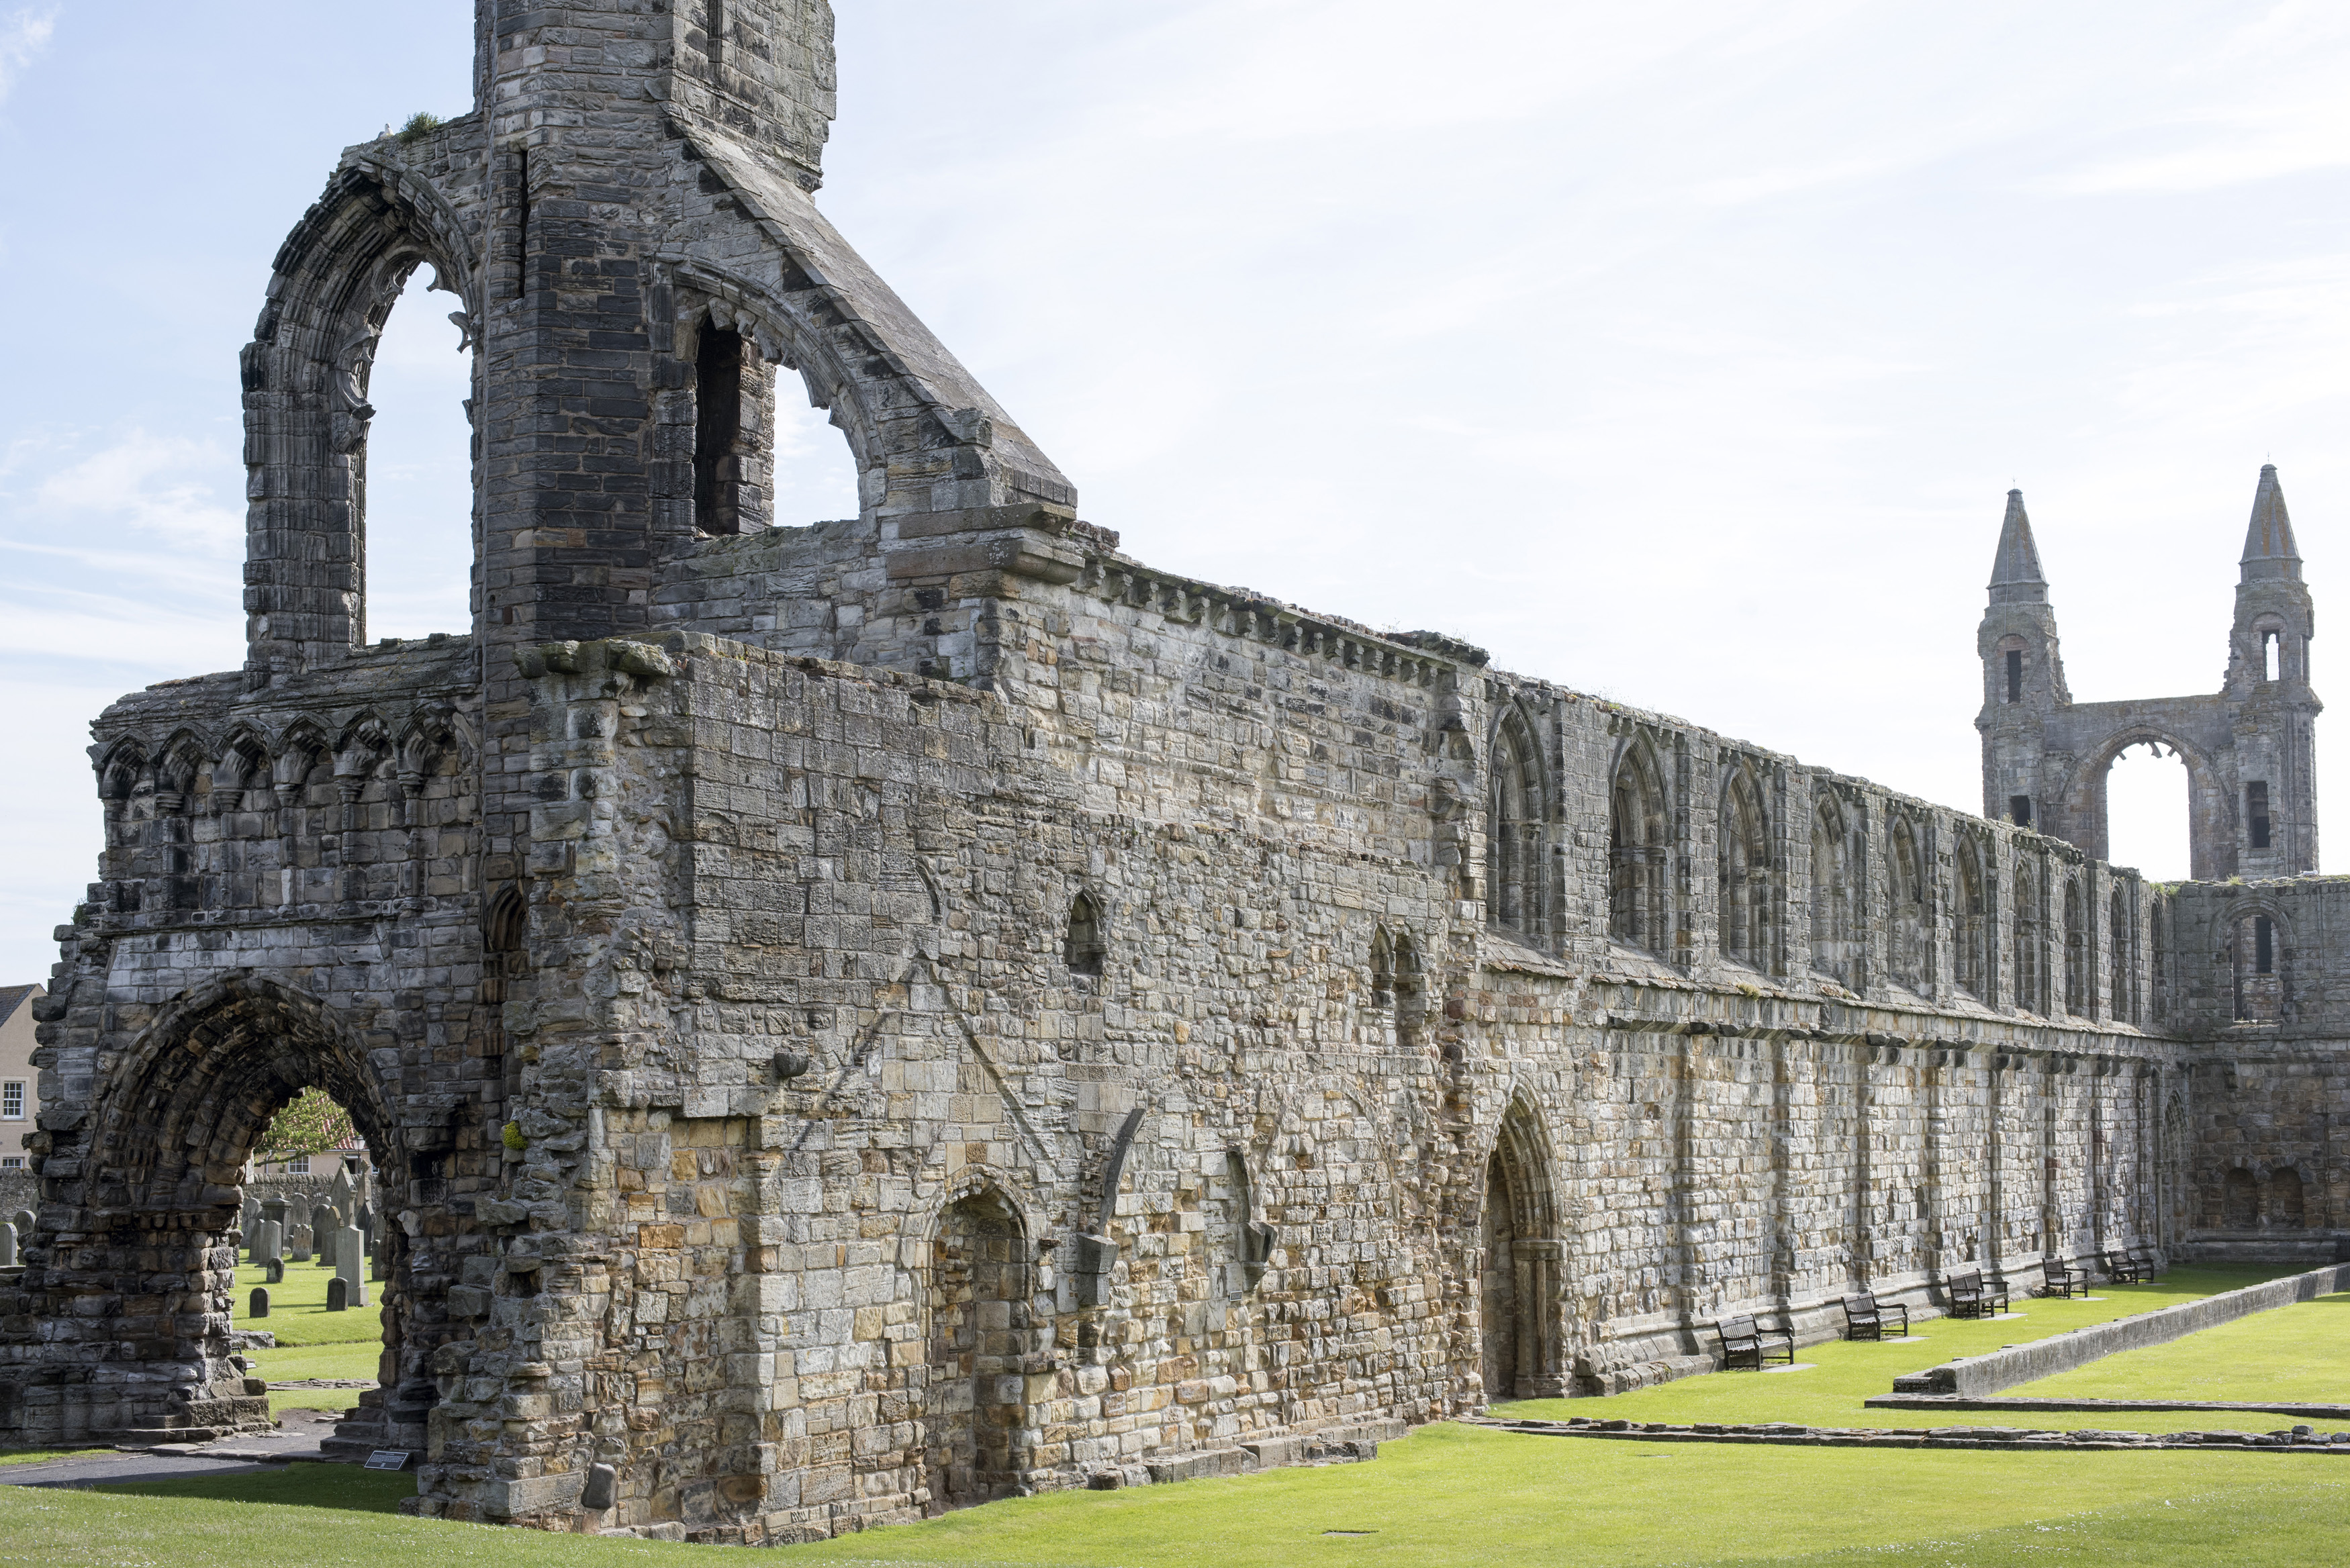 Remnants of the ancient stone medieval nave of the ruined St Andrews Cathedral, St Andrews, Scotland